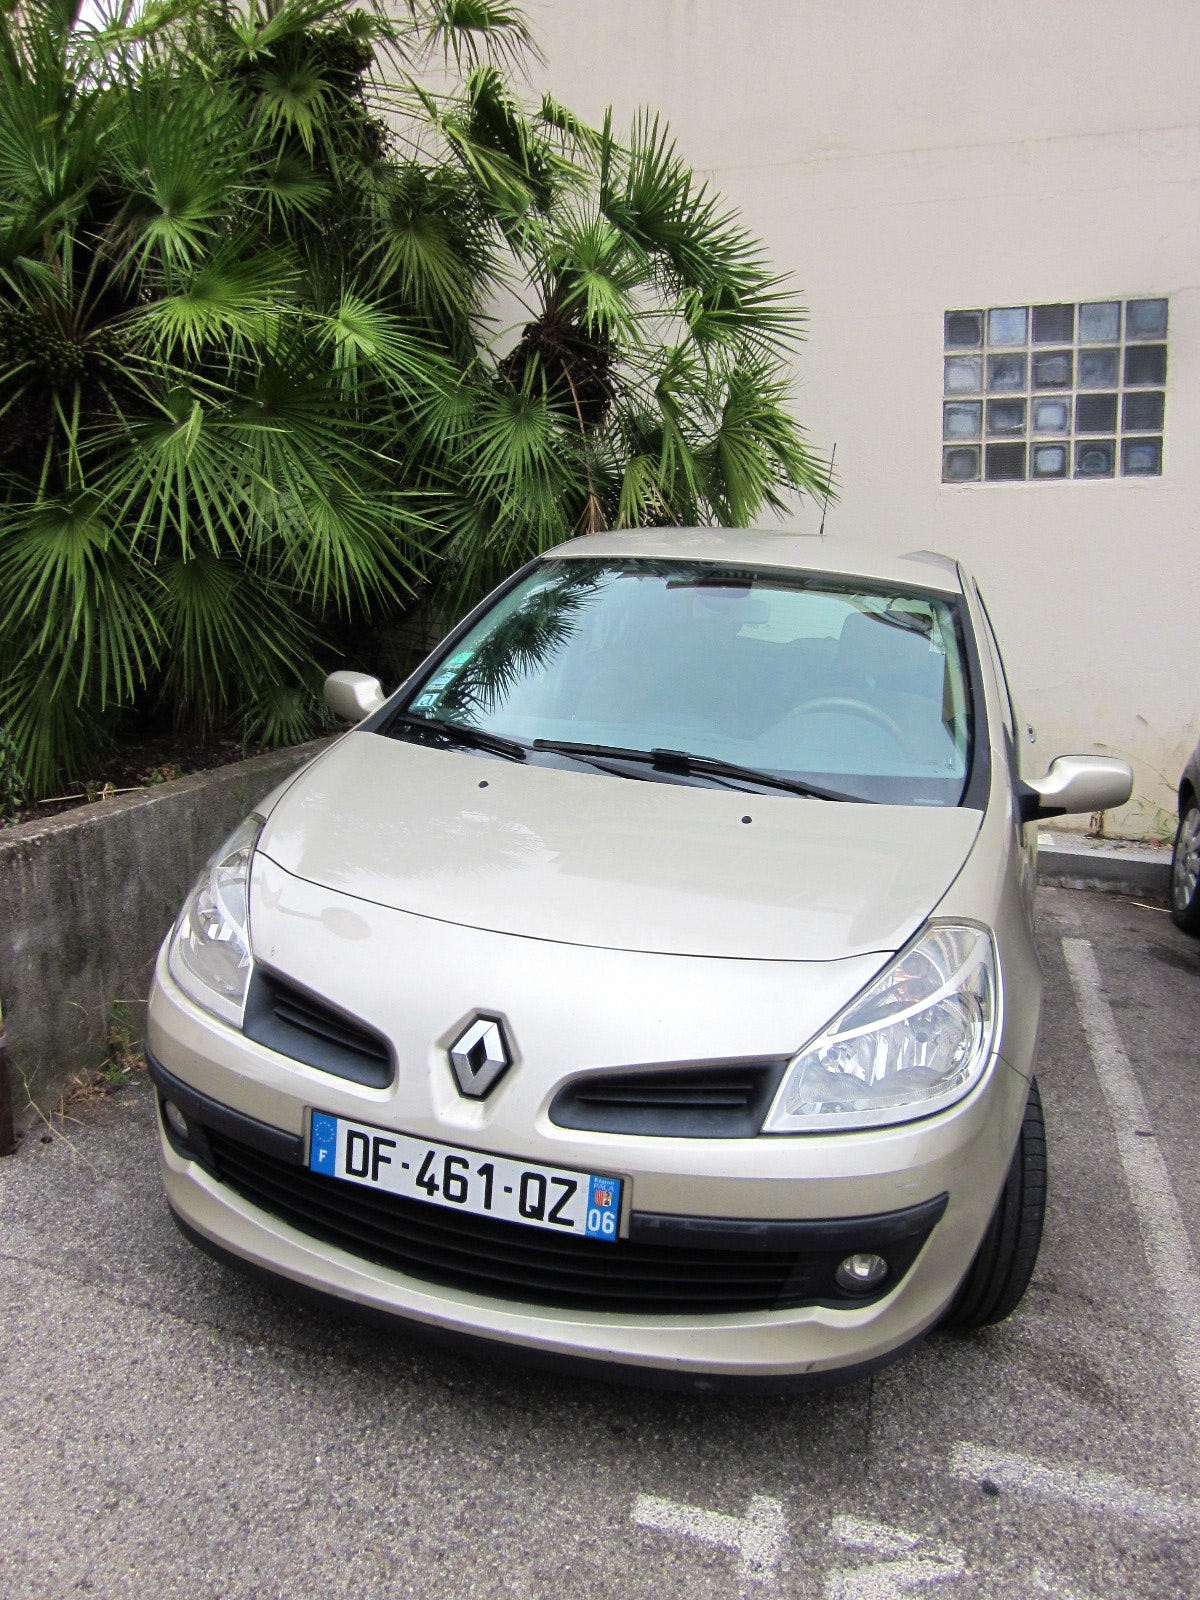 Renault Clio 3 III 1.6 16S LUXE PRIVILEGE 5P, 2006, Essence